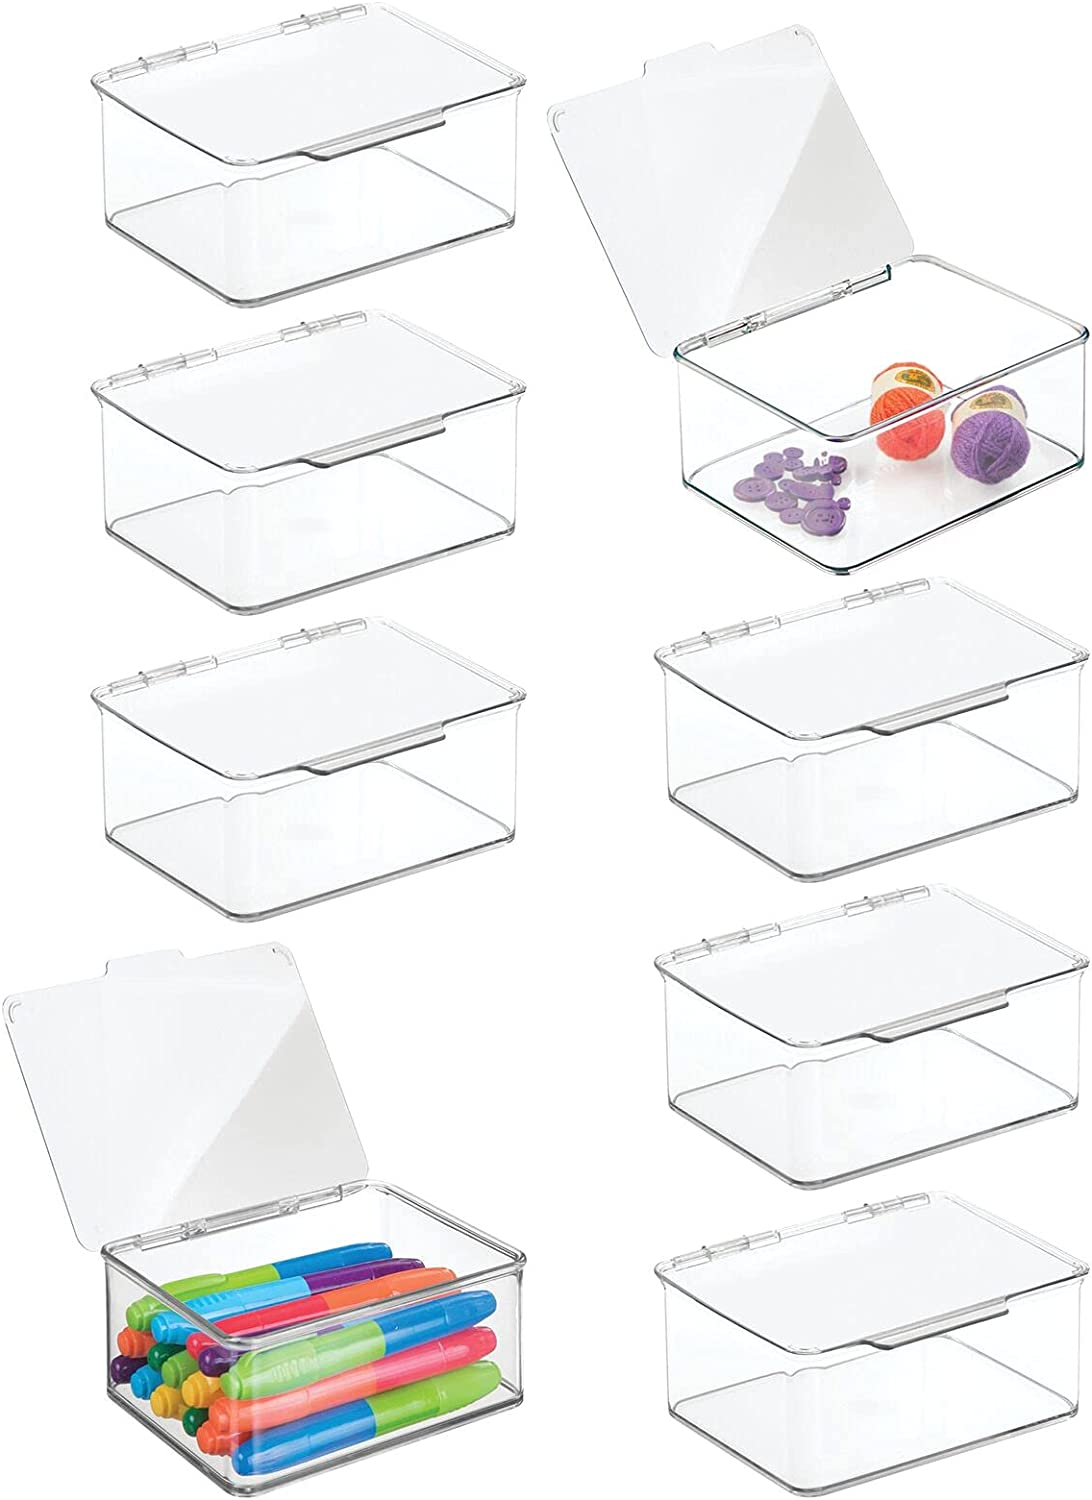 Max 81% OFF mDesign Plastic Stackable Some reservation Craft Storage Sewing Contain Crochet